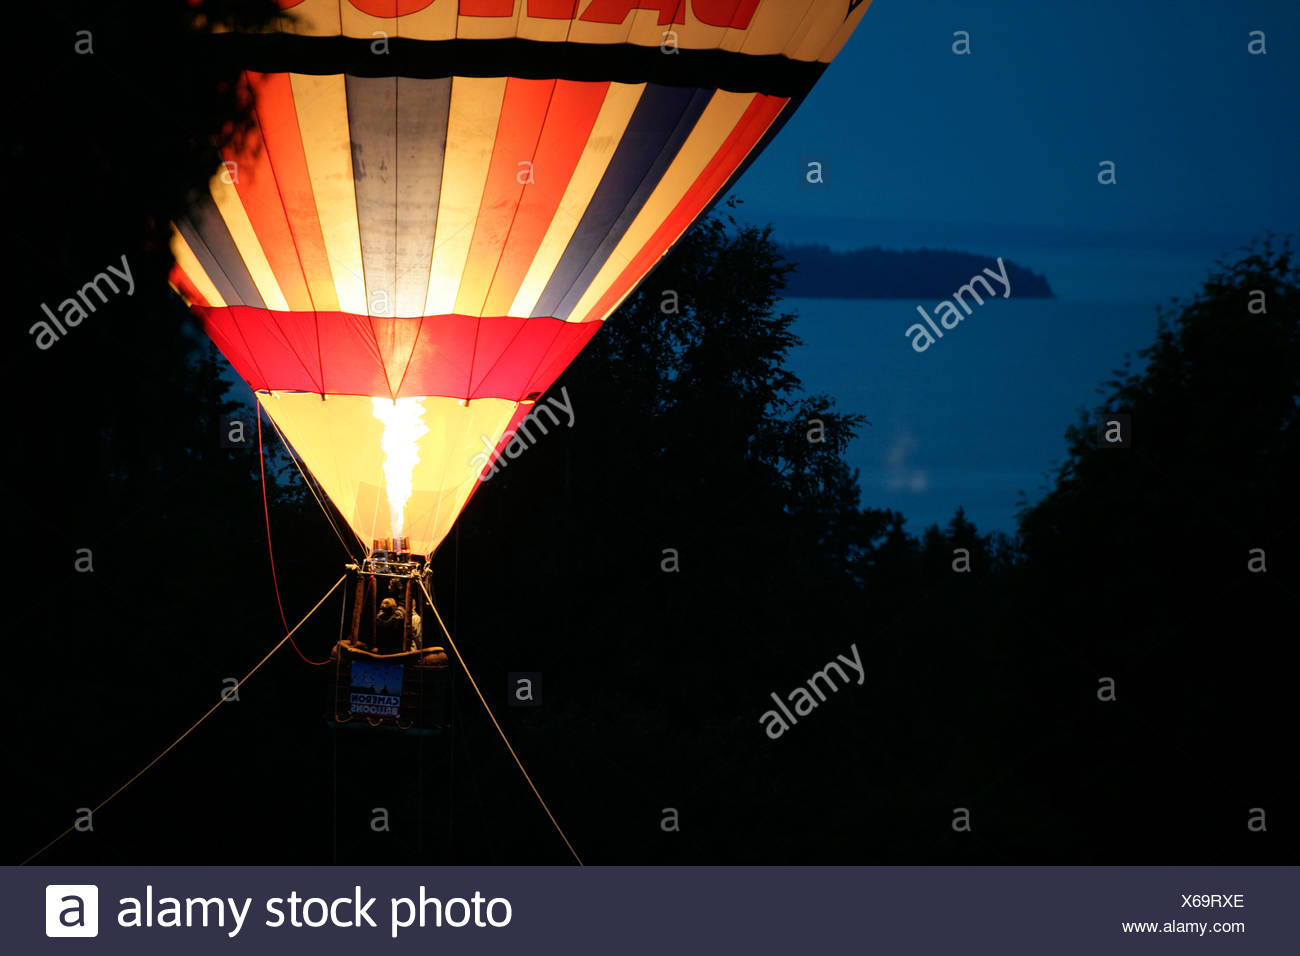 A balloon in the air, Dalarna, Sweden. - Stock Image